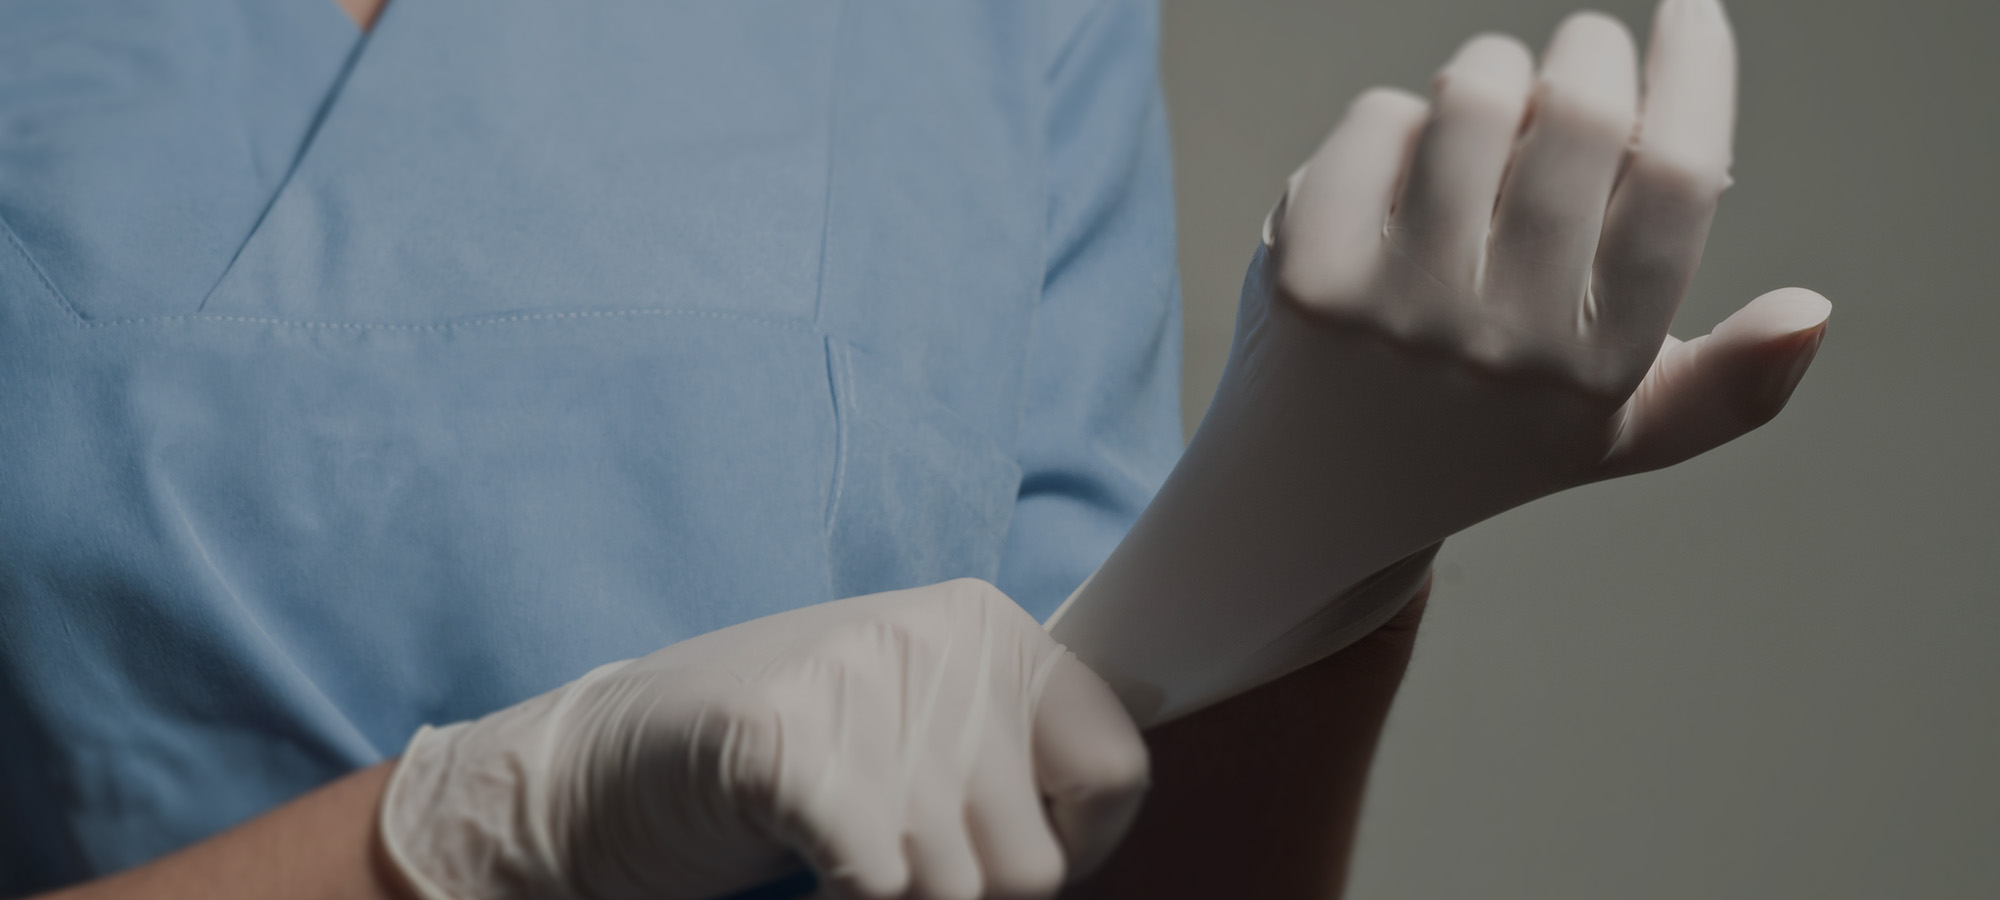 Image of a surgeon putting on gloves